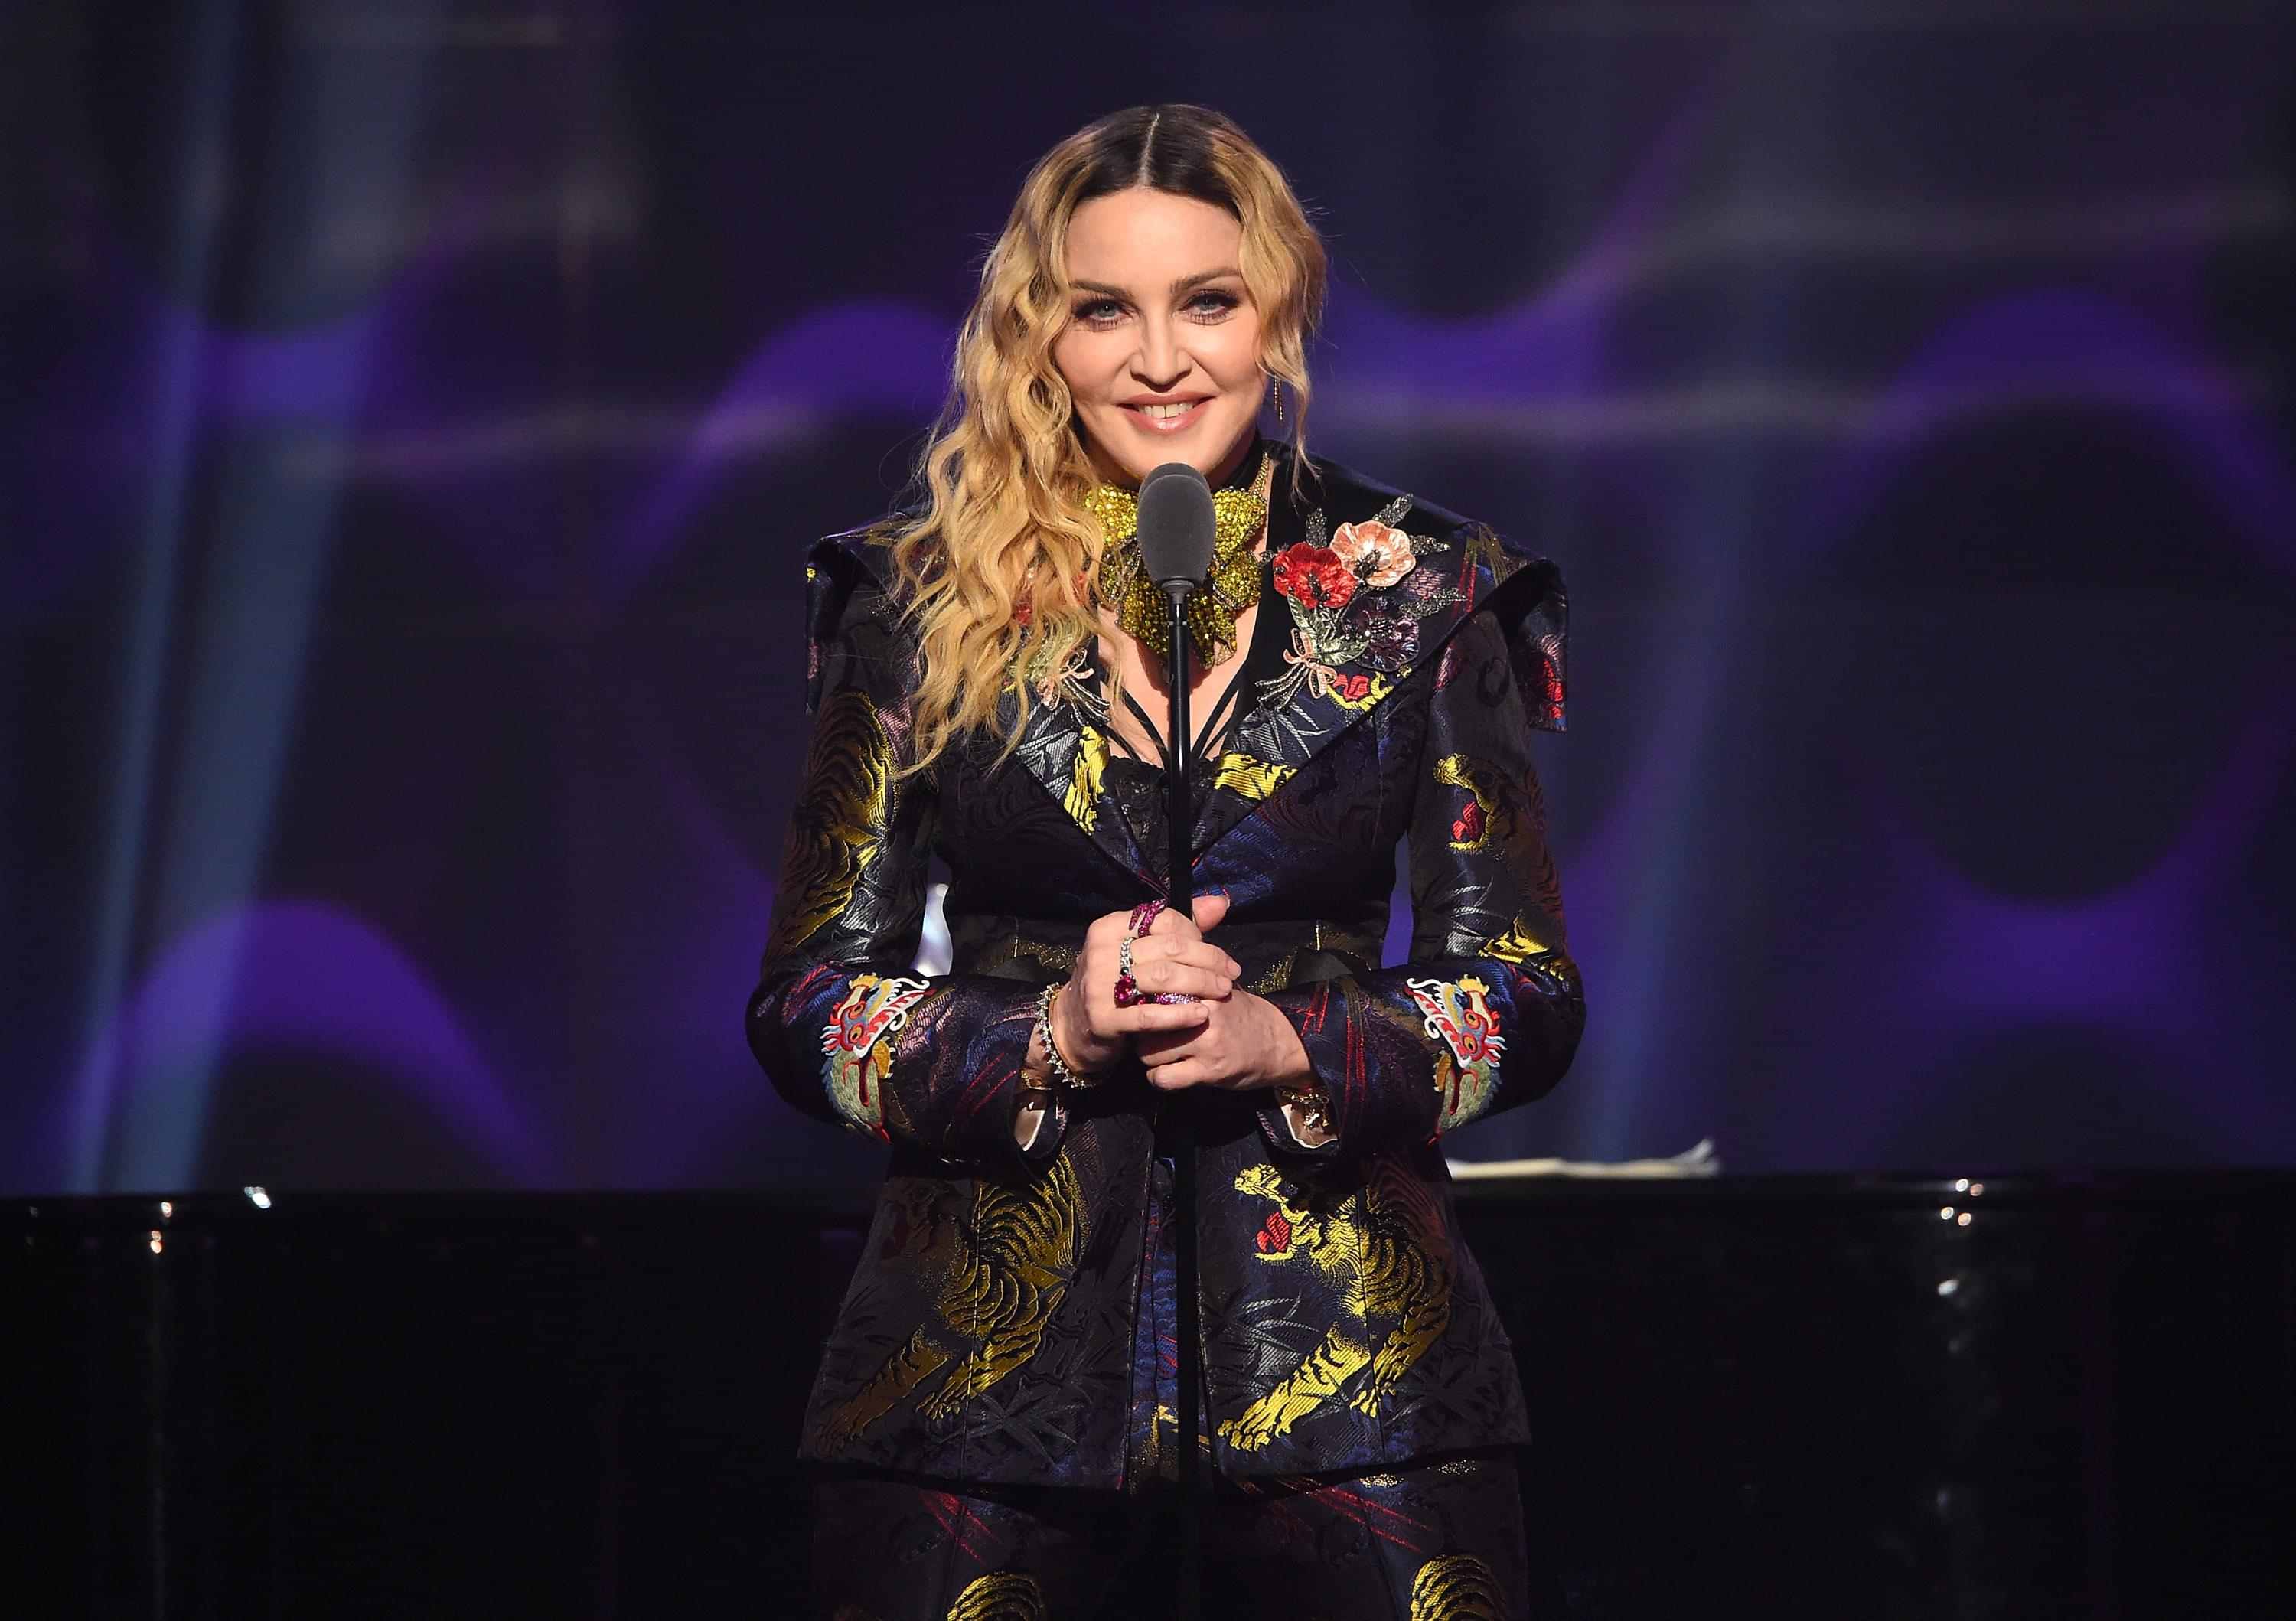 Madonna teases new upcoming music on Twitter